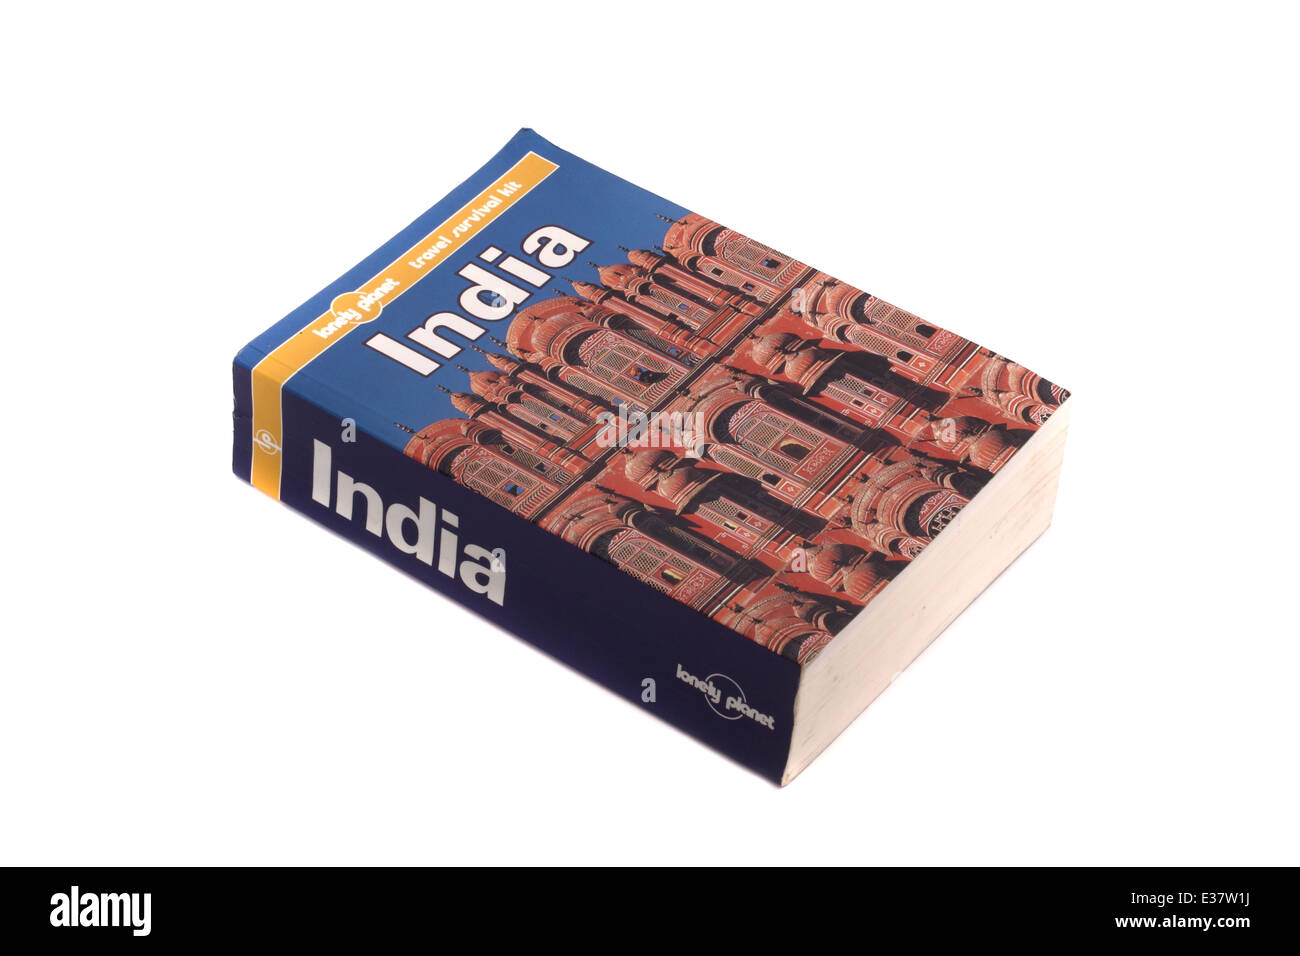 A Lonely Planet travel guide to India. Stock Photo